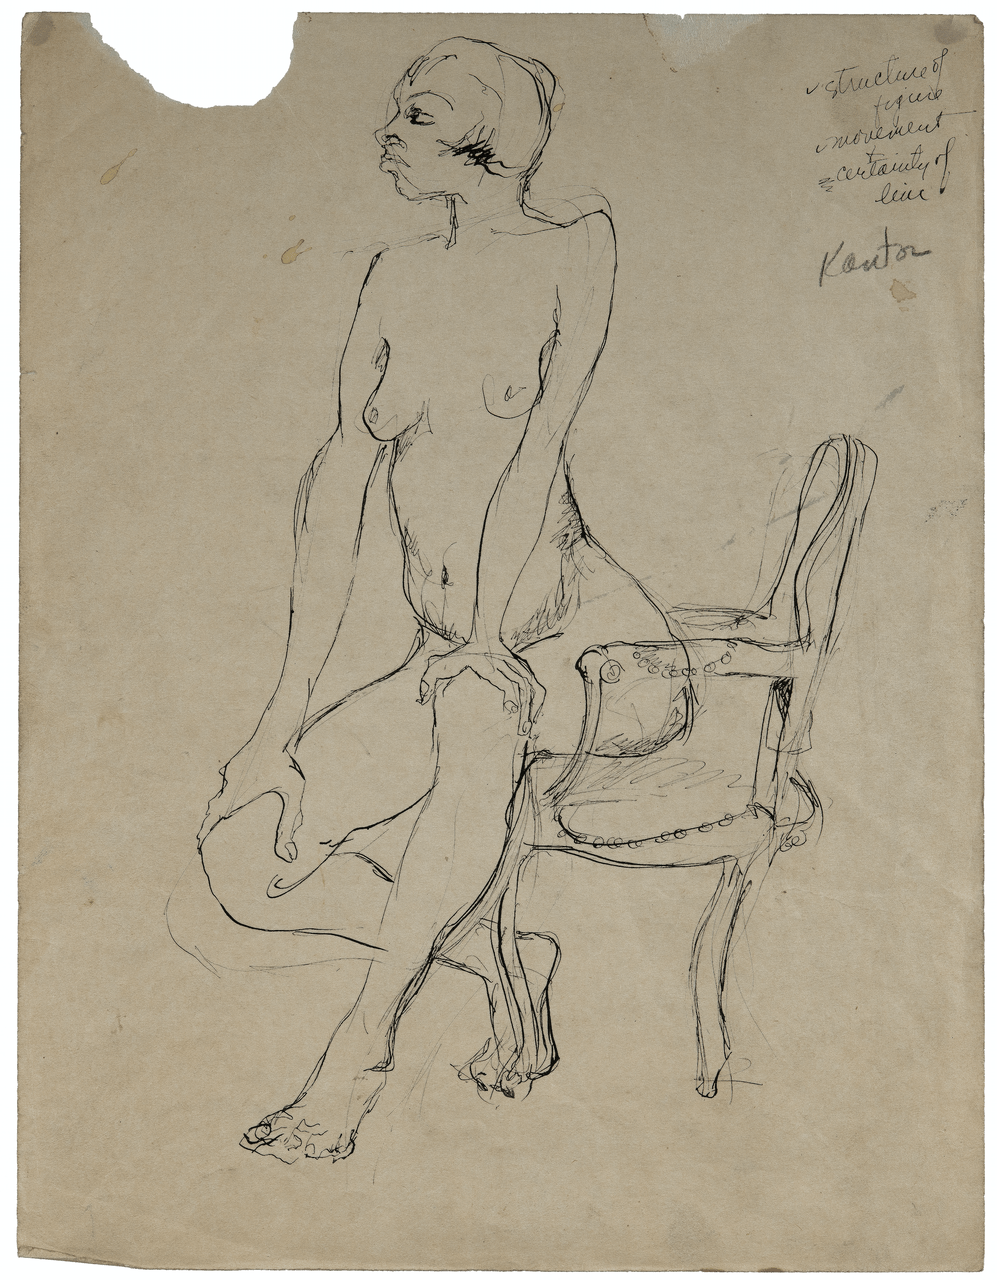 An Ink Drawing Study Sketch By Morris Kantor 1896-1974